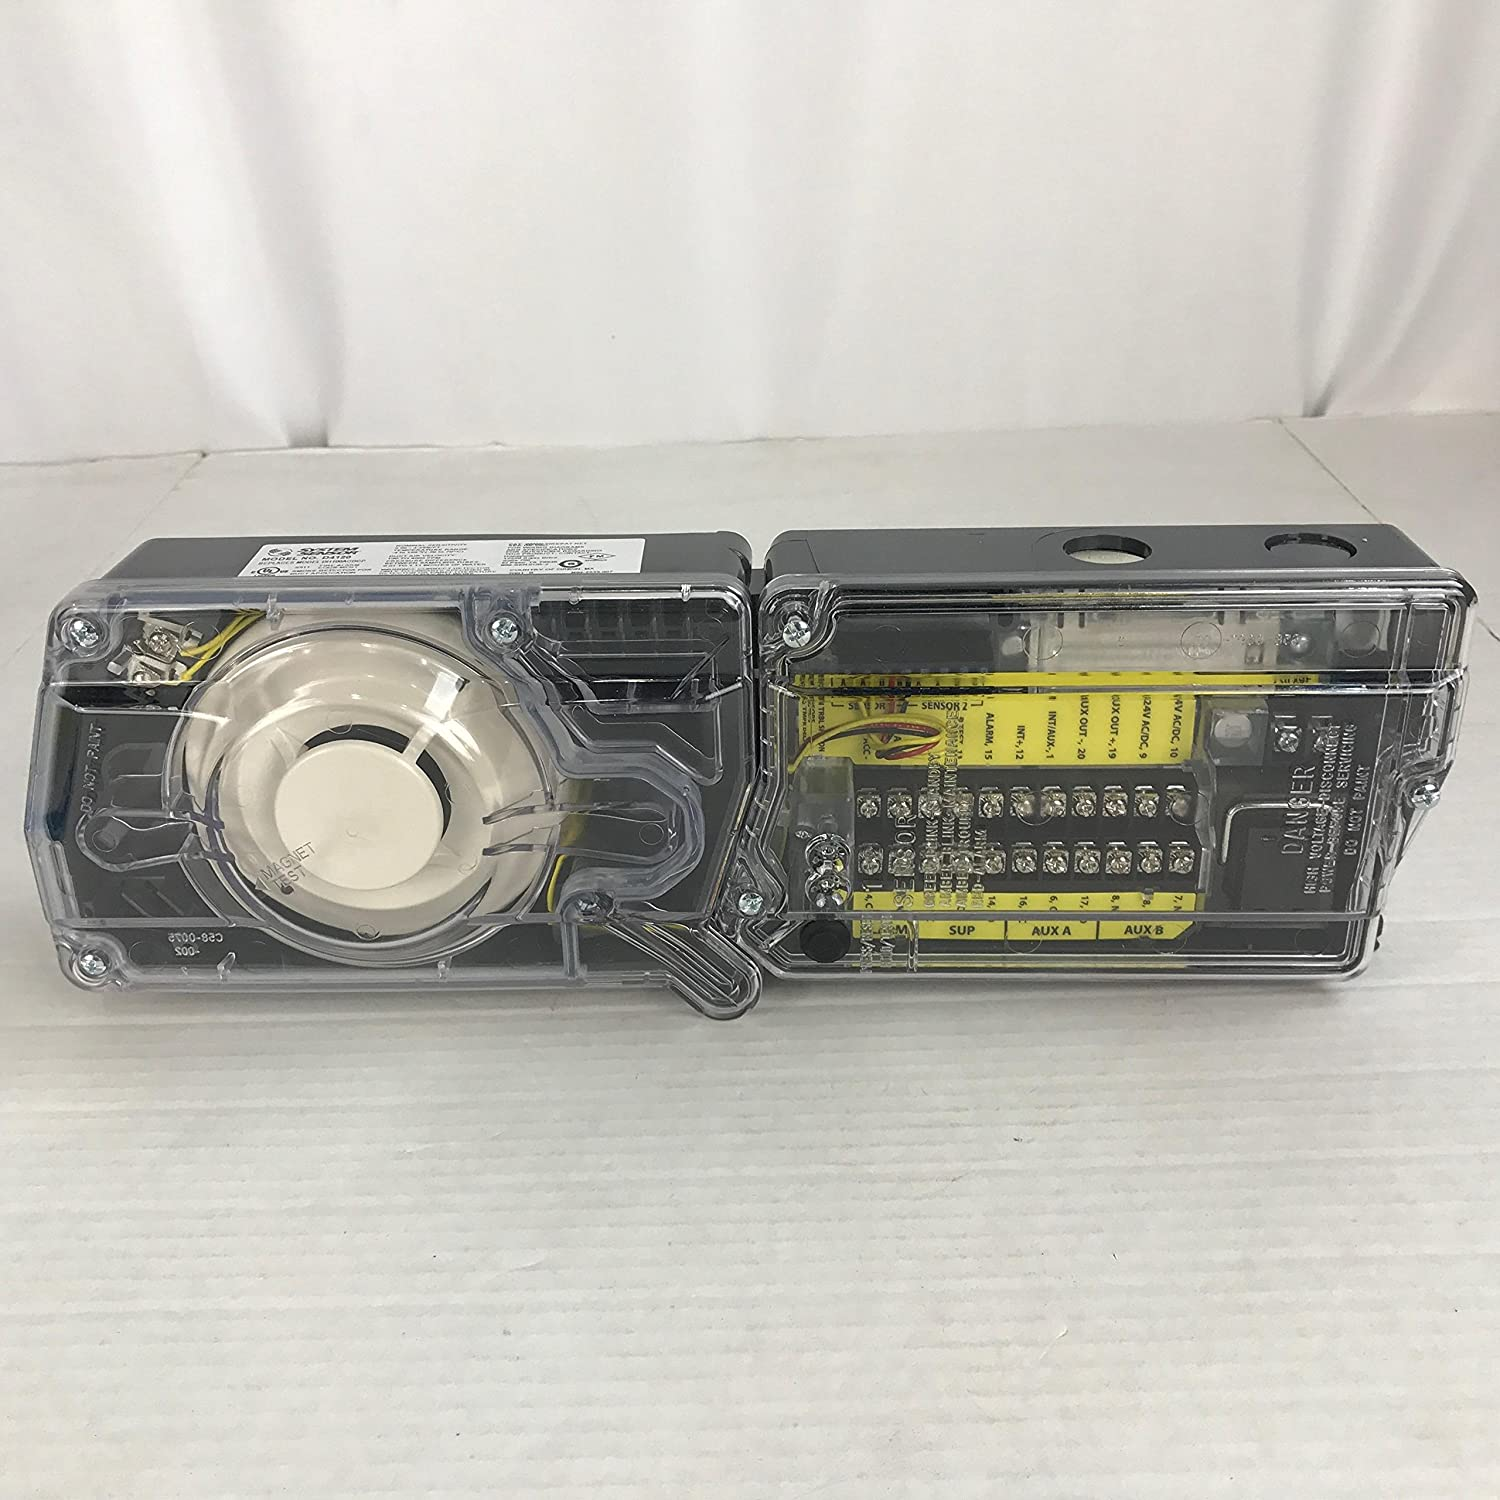 System Sensor D4120- InnovairFlex 4-Wire Photo Duct Detector - - Amazon.com